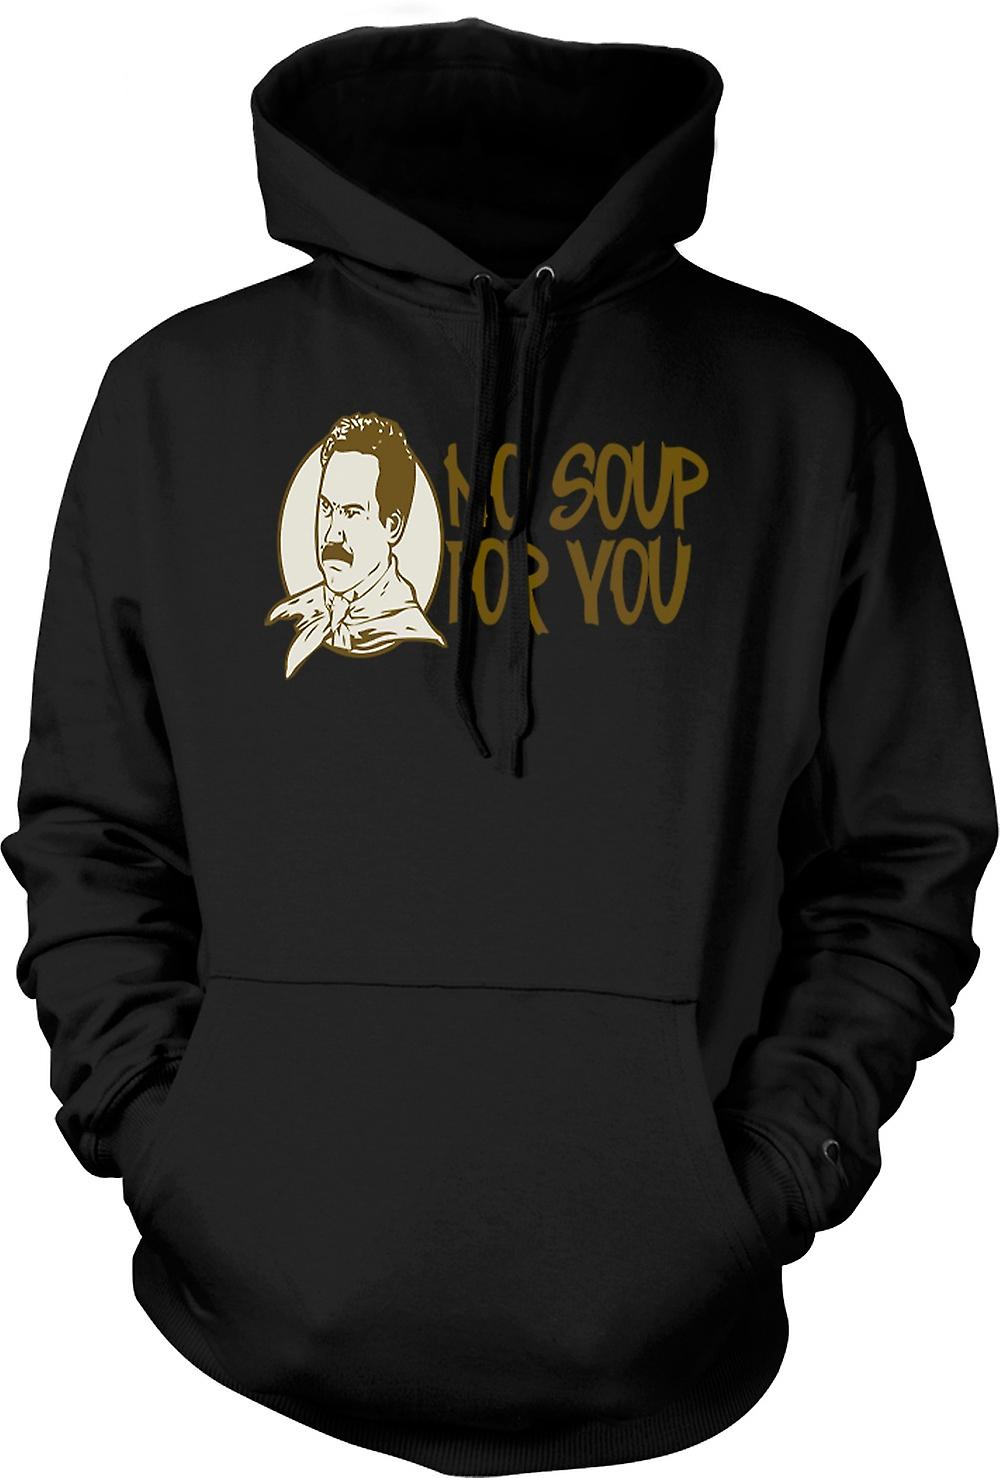 Mens Hoodie - No Soup For You - Quote